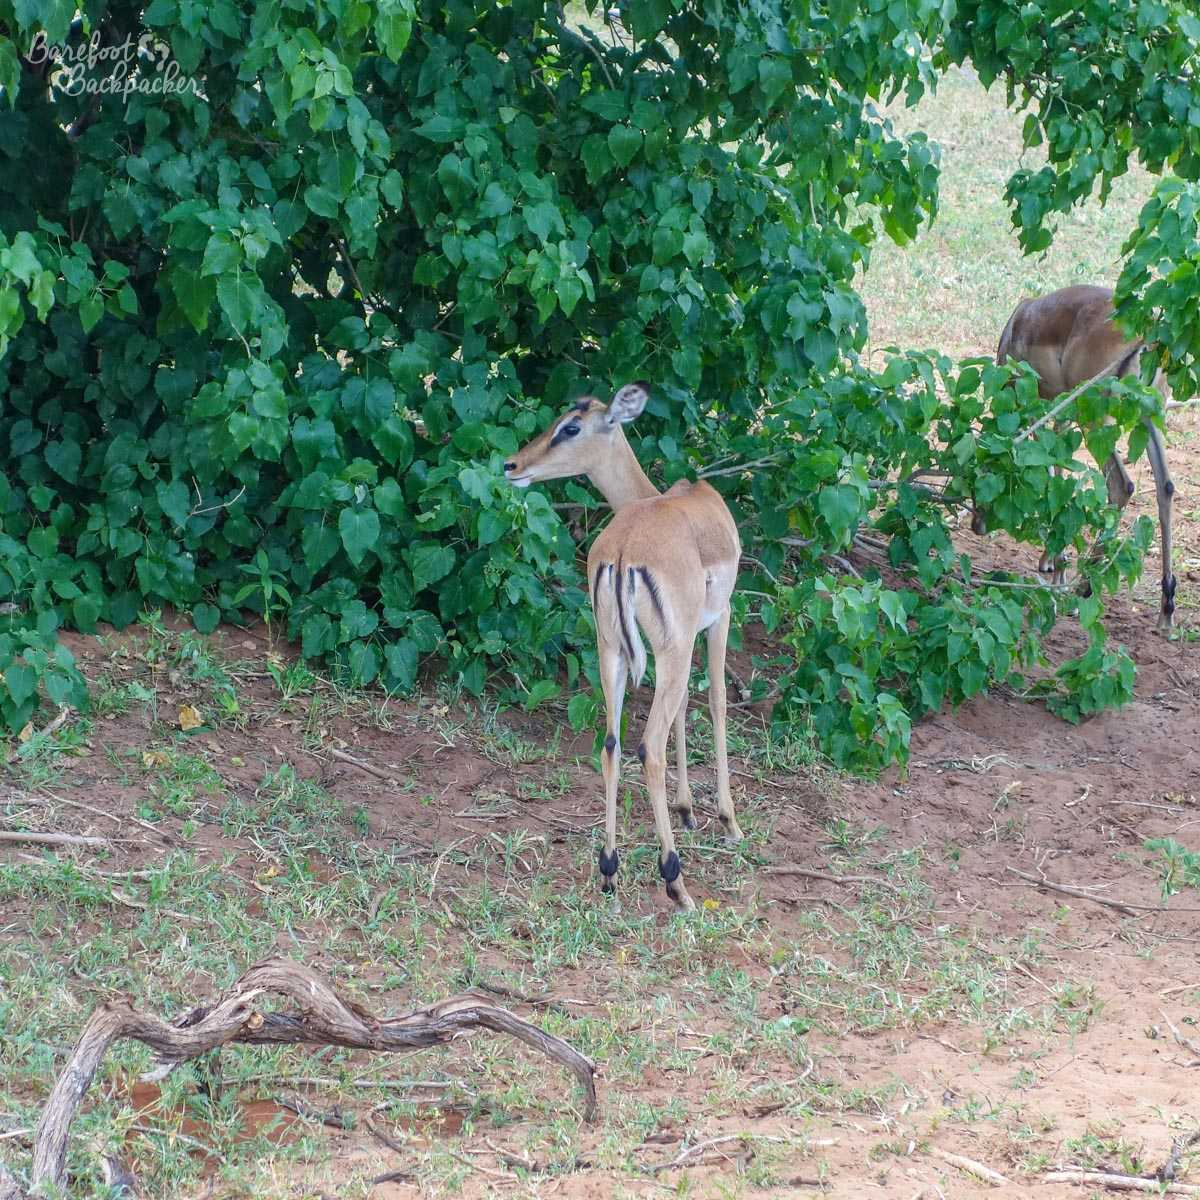 A deer, or possibly an eland or kudu. I've no idea. Probably more commonly known as 'fast food'?